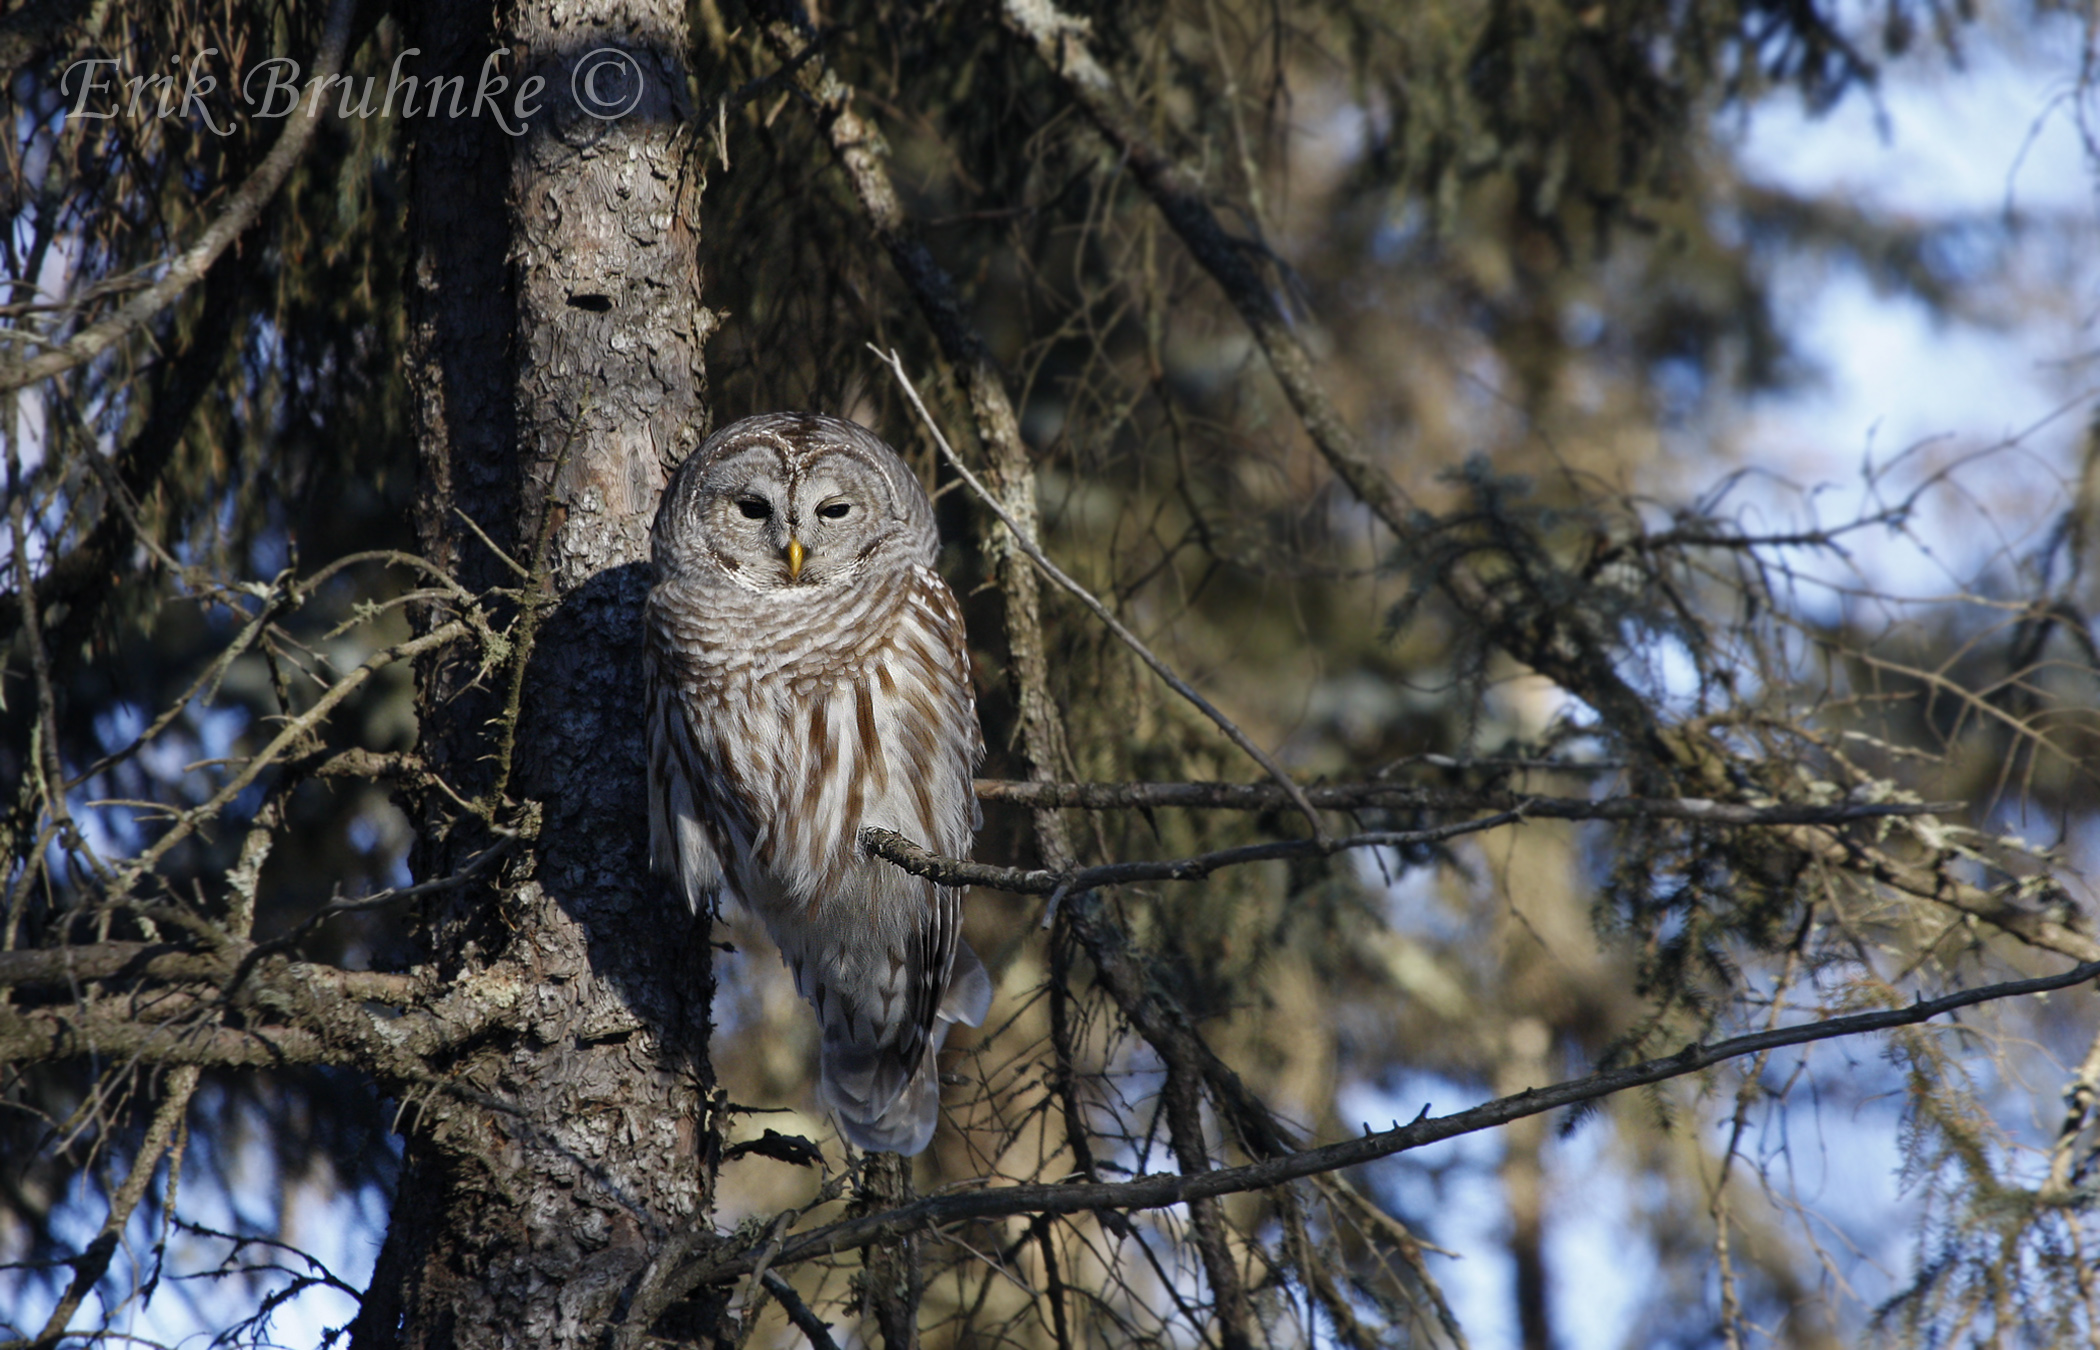 Barred Owl.  Photo by Erik Bruhnke.